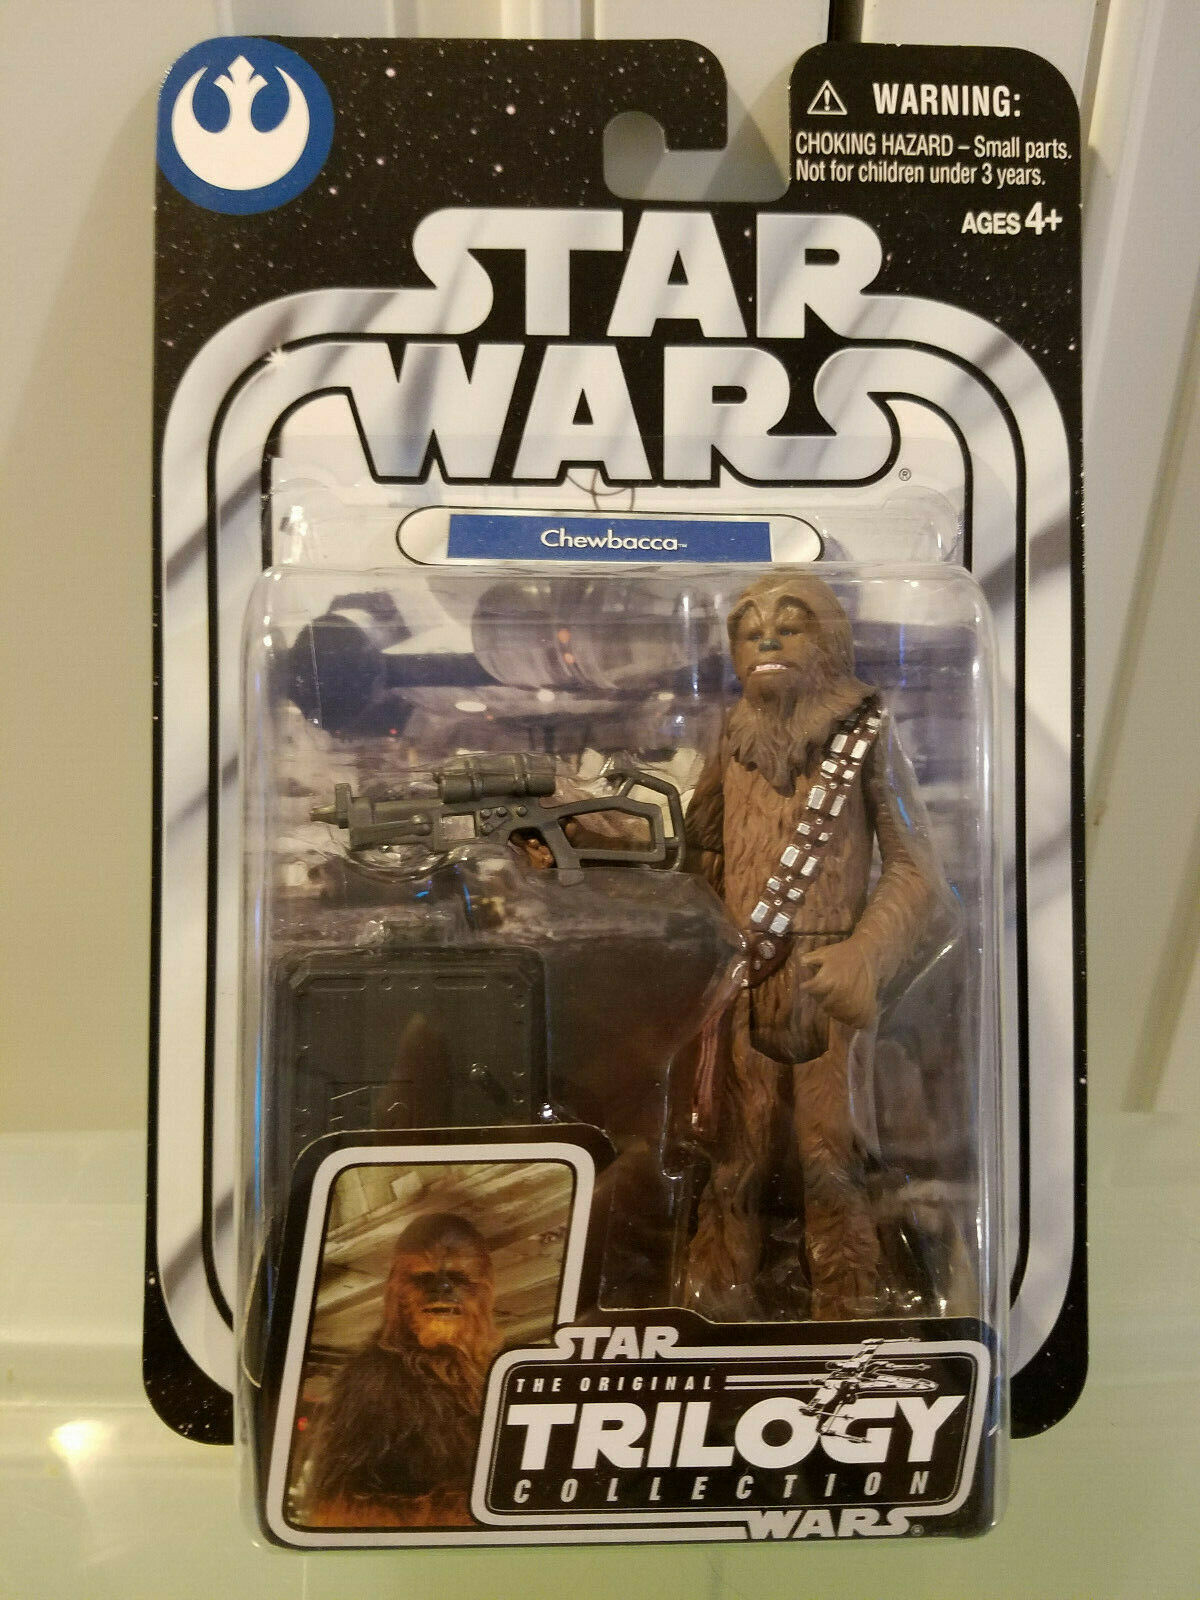 STAR WARS OTC ORIGINAL TRILOGY SERIES #08 WOOKIEE COPILOT CHEWBACCA FIGURE